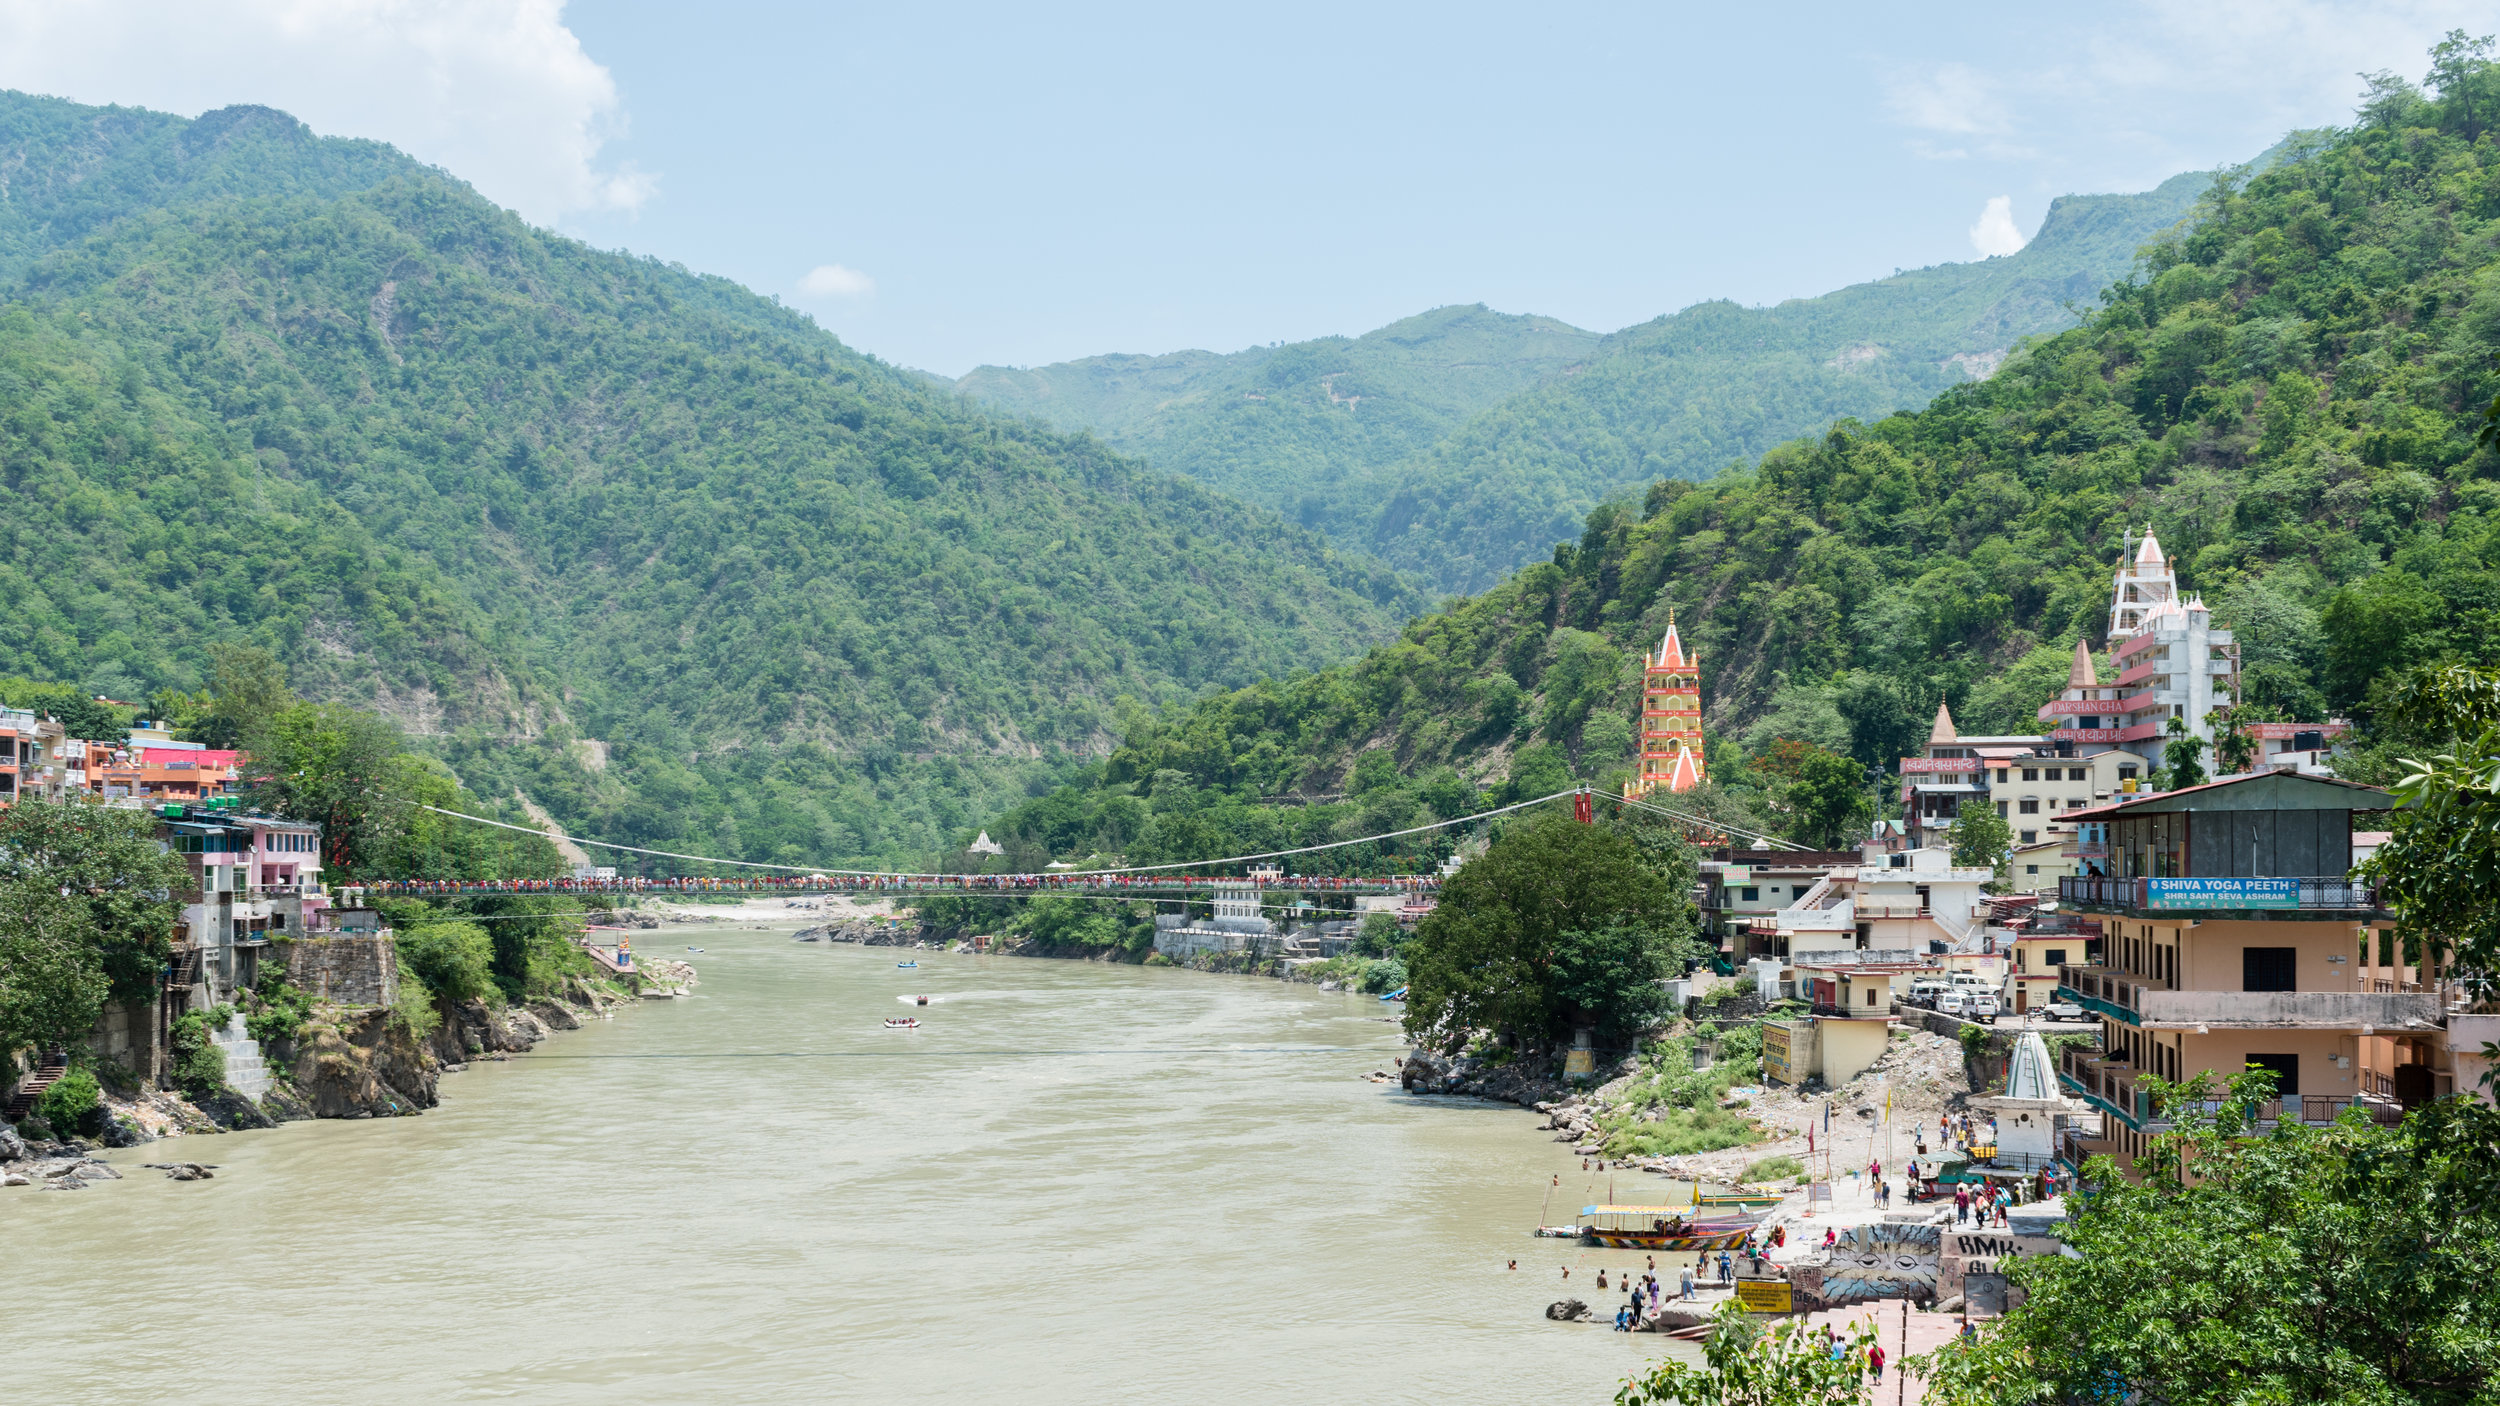 The River Ganges And Footbridge in Rishikesh, India